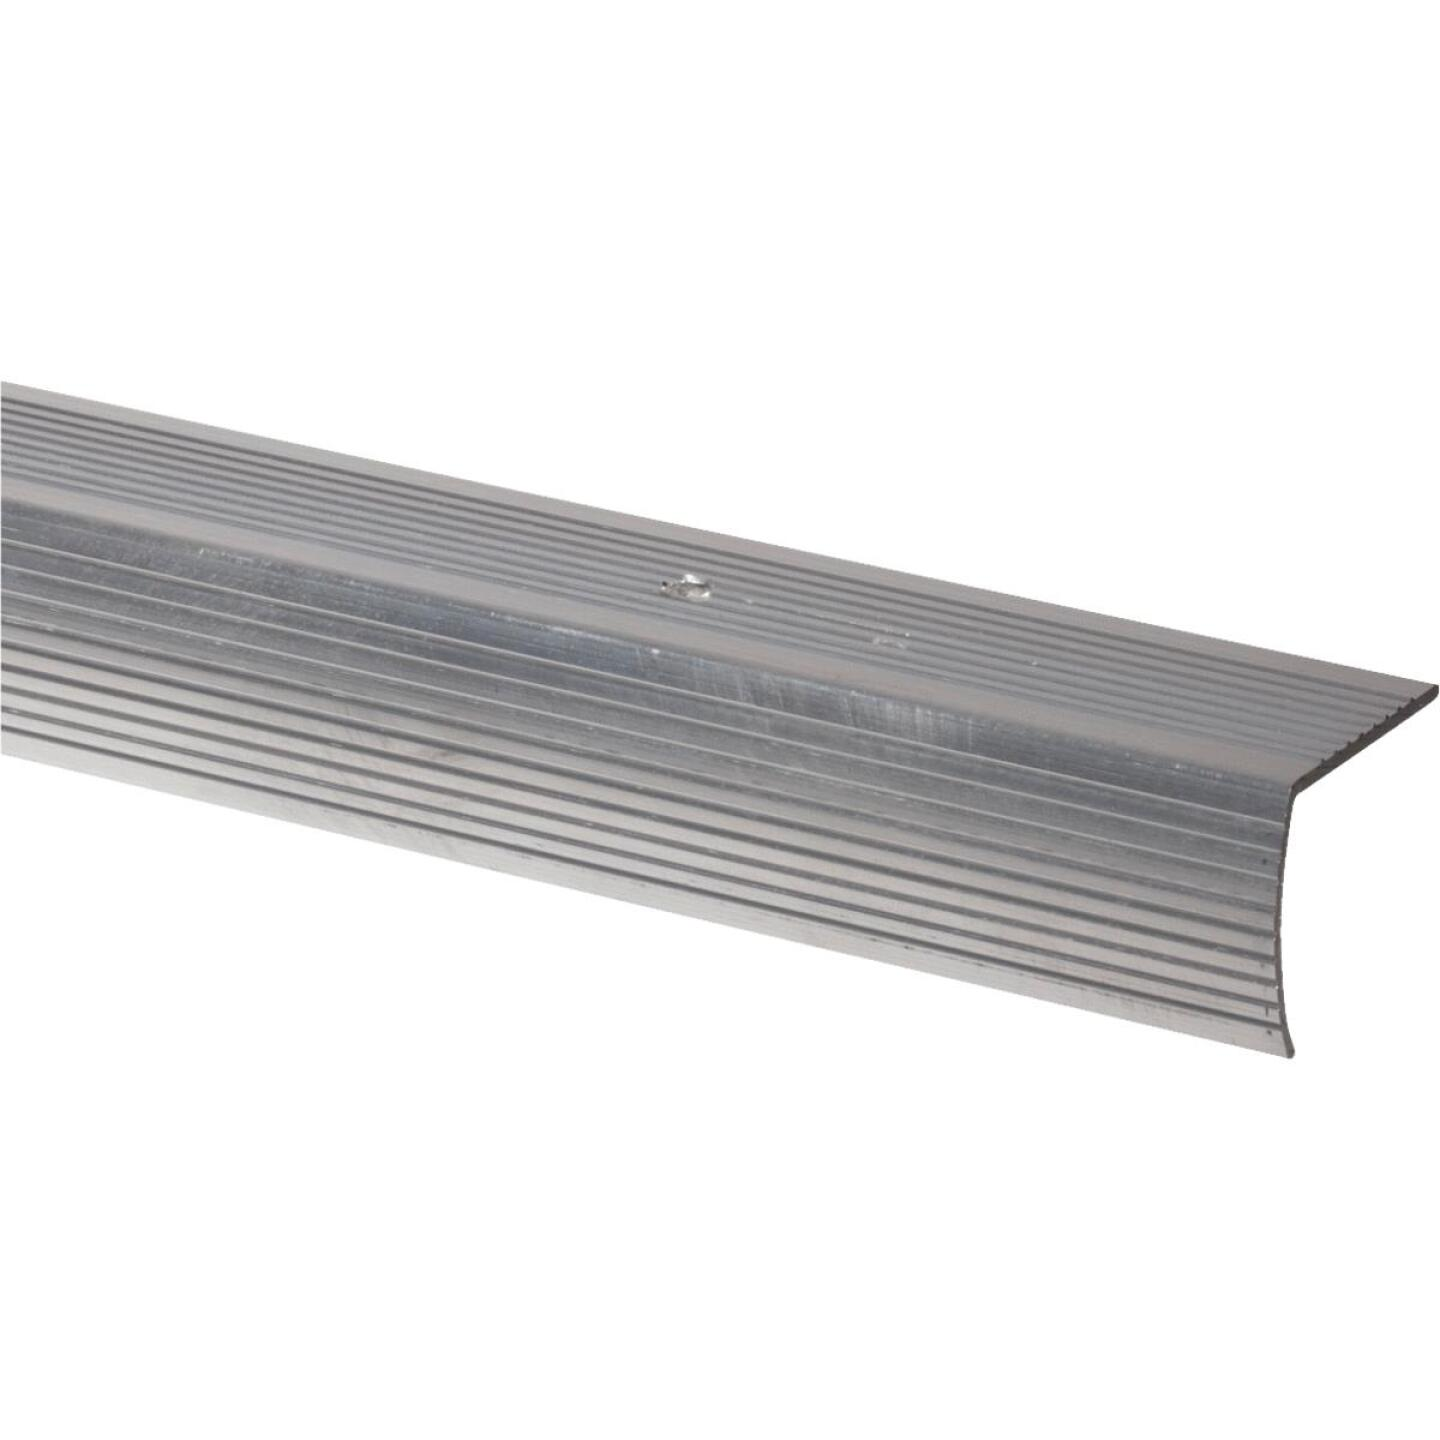 M-D Satin Silver 1-1/8 In. W x 72 In. L Aluminum Stairnose Image 1